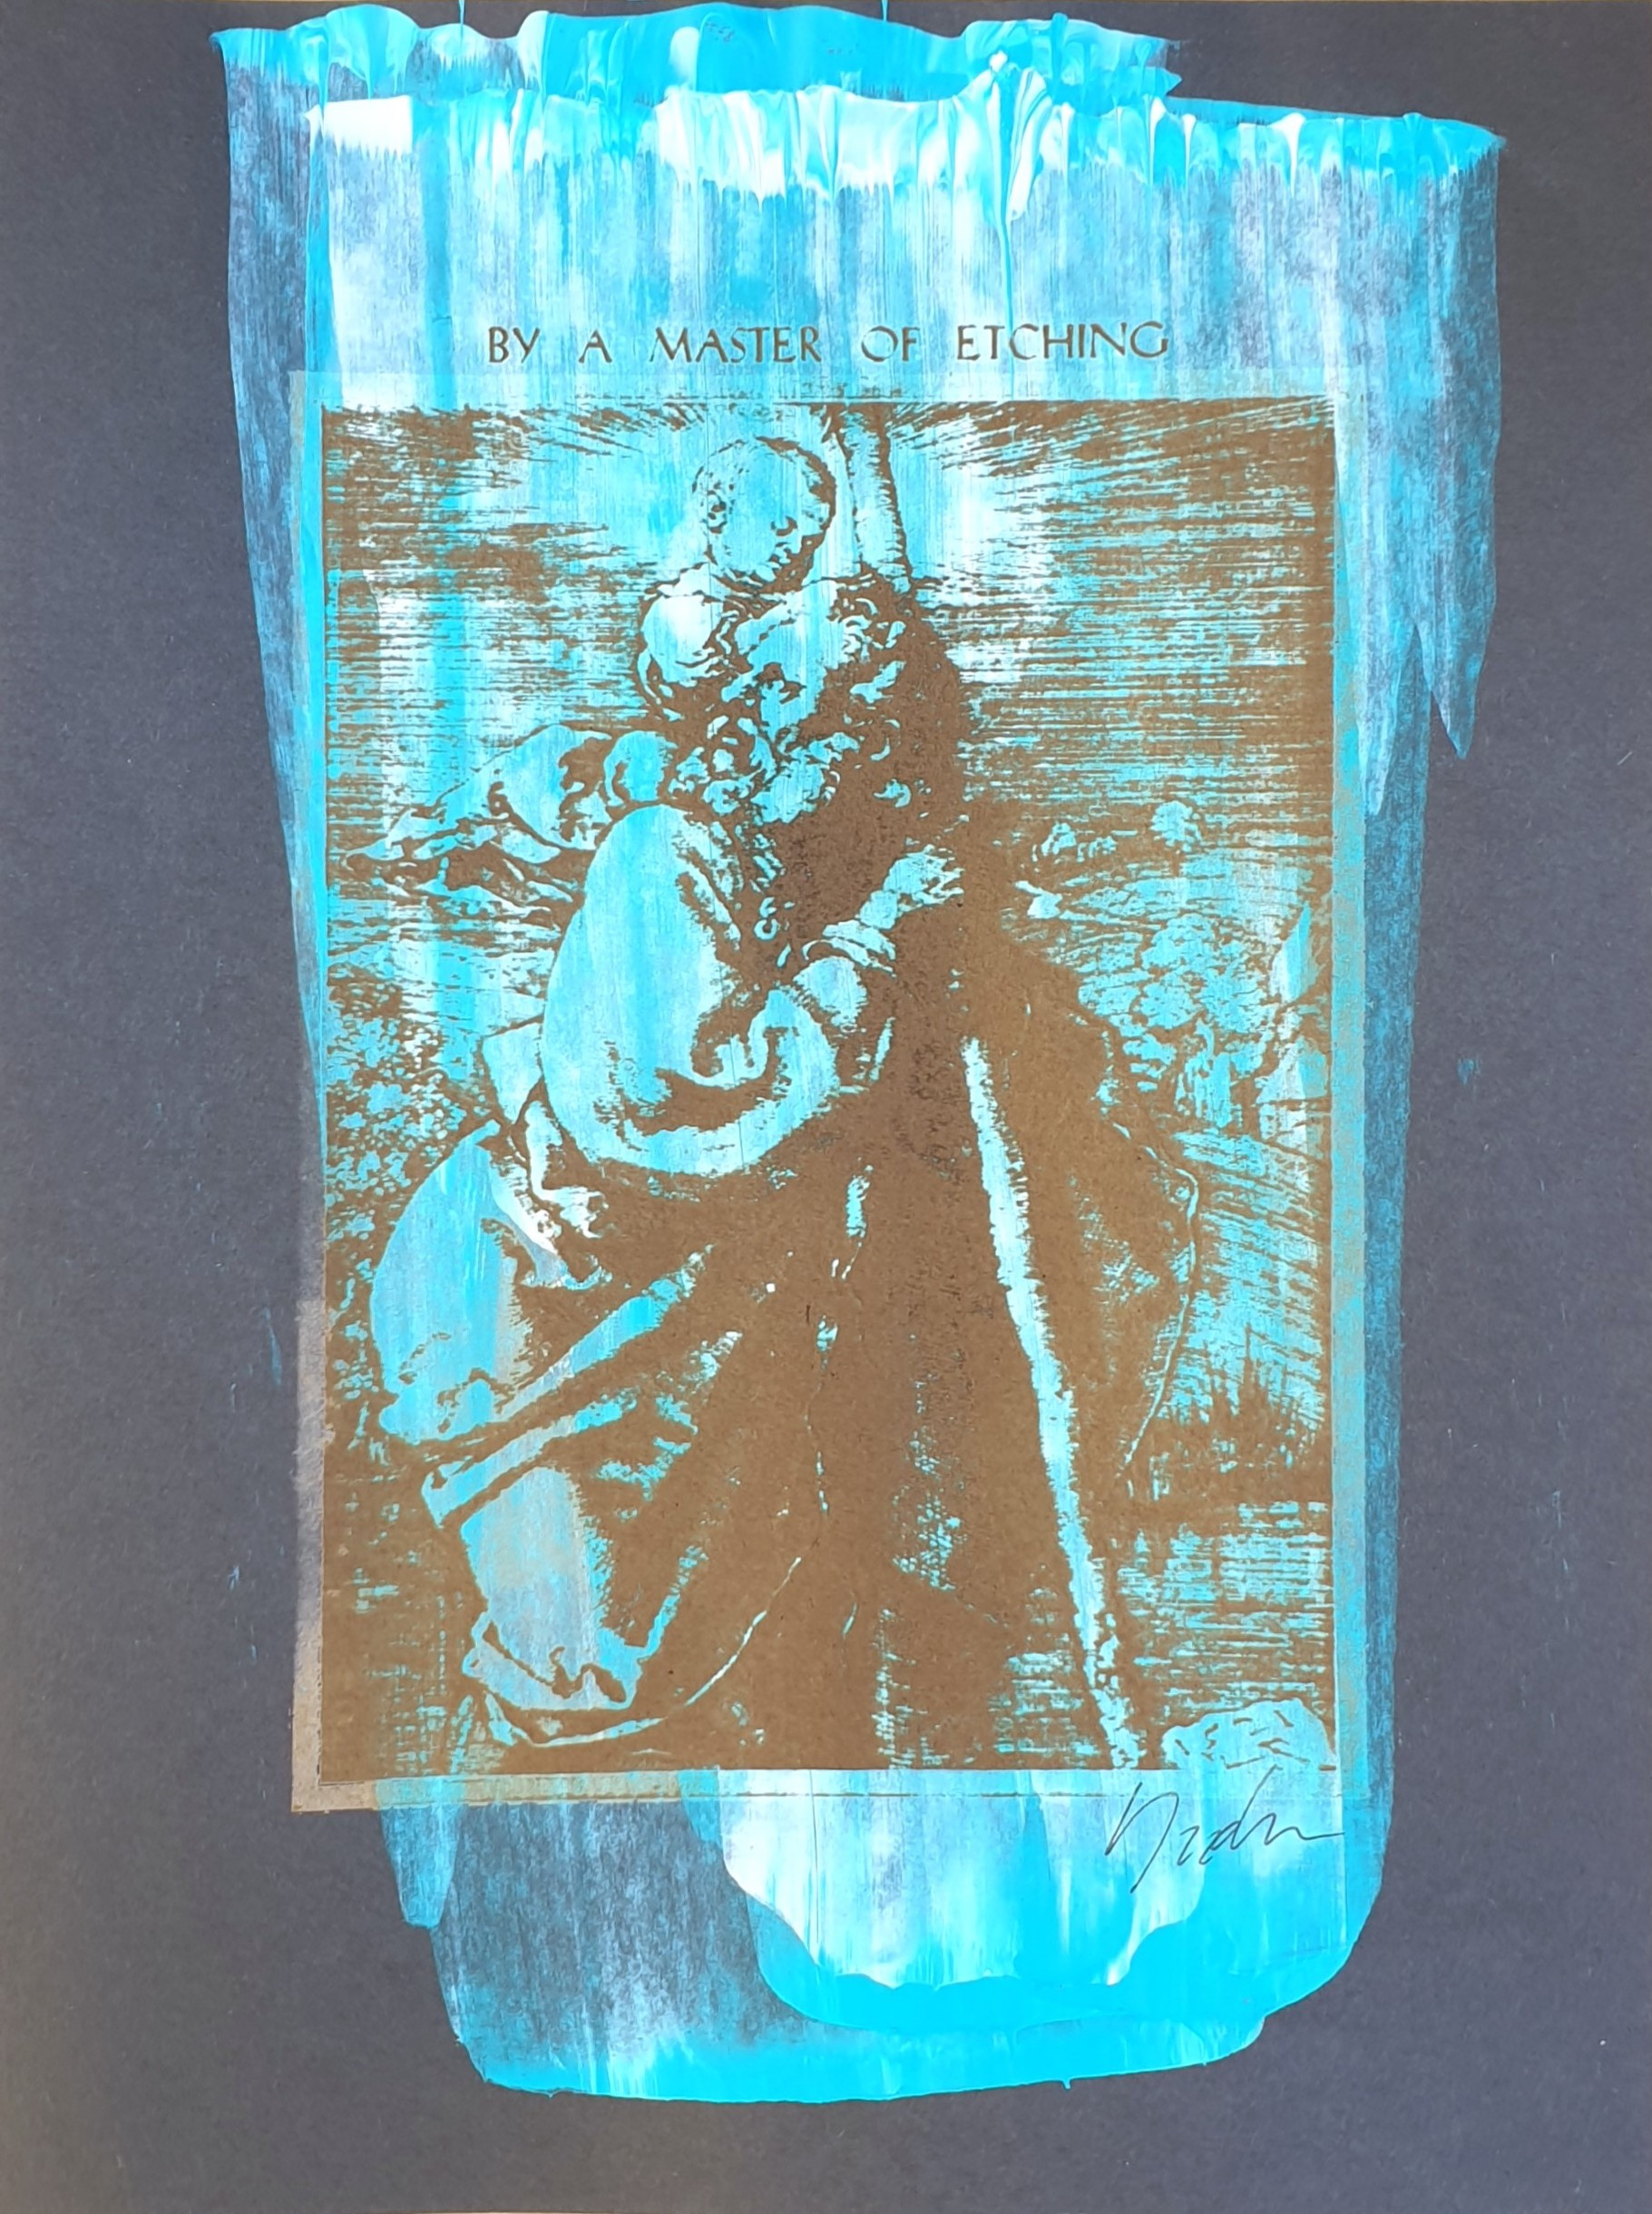 (108) Yudha Scholes - By A Master of Etching Image